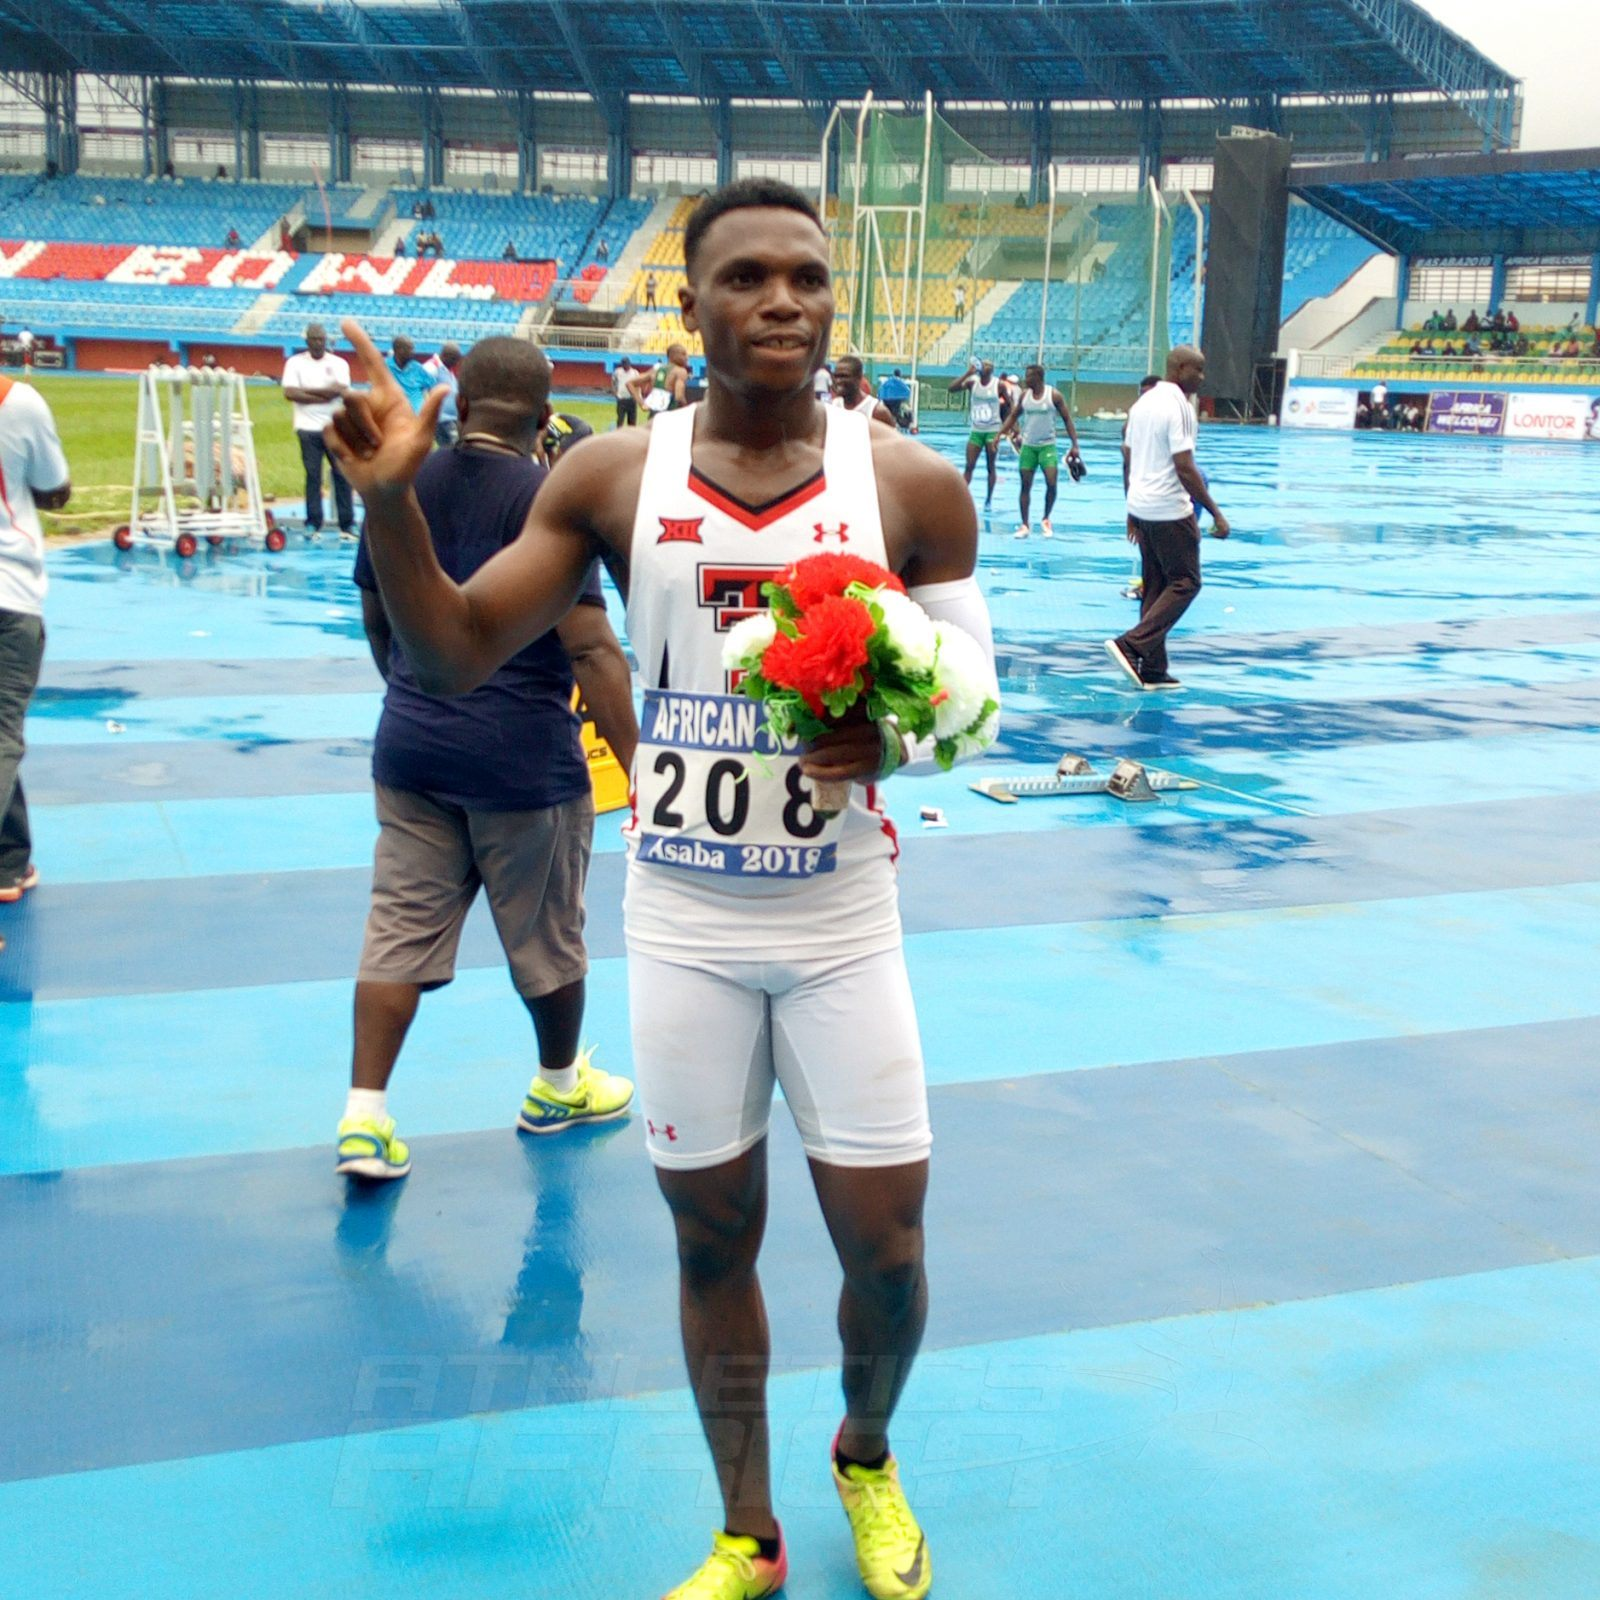 Divine Oduduru won the men's 100m in 10.40 secs. Ogho-Oghene Egwero finished 2nd in 10.46 and Enoch Adegoke 3rd in 10.52. / Photo credit: Naomi Peters for Athletics Africa